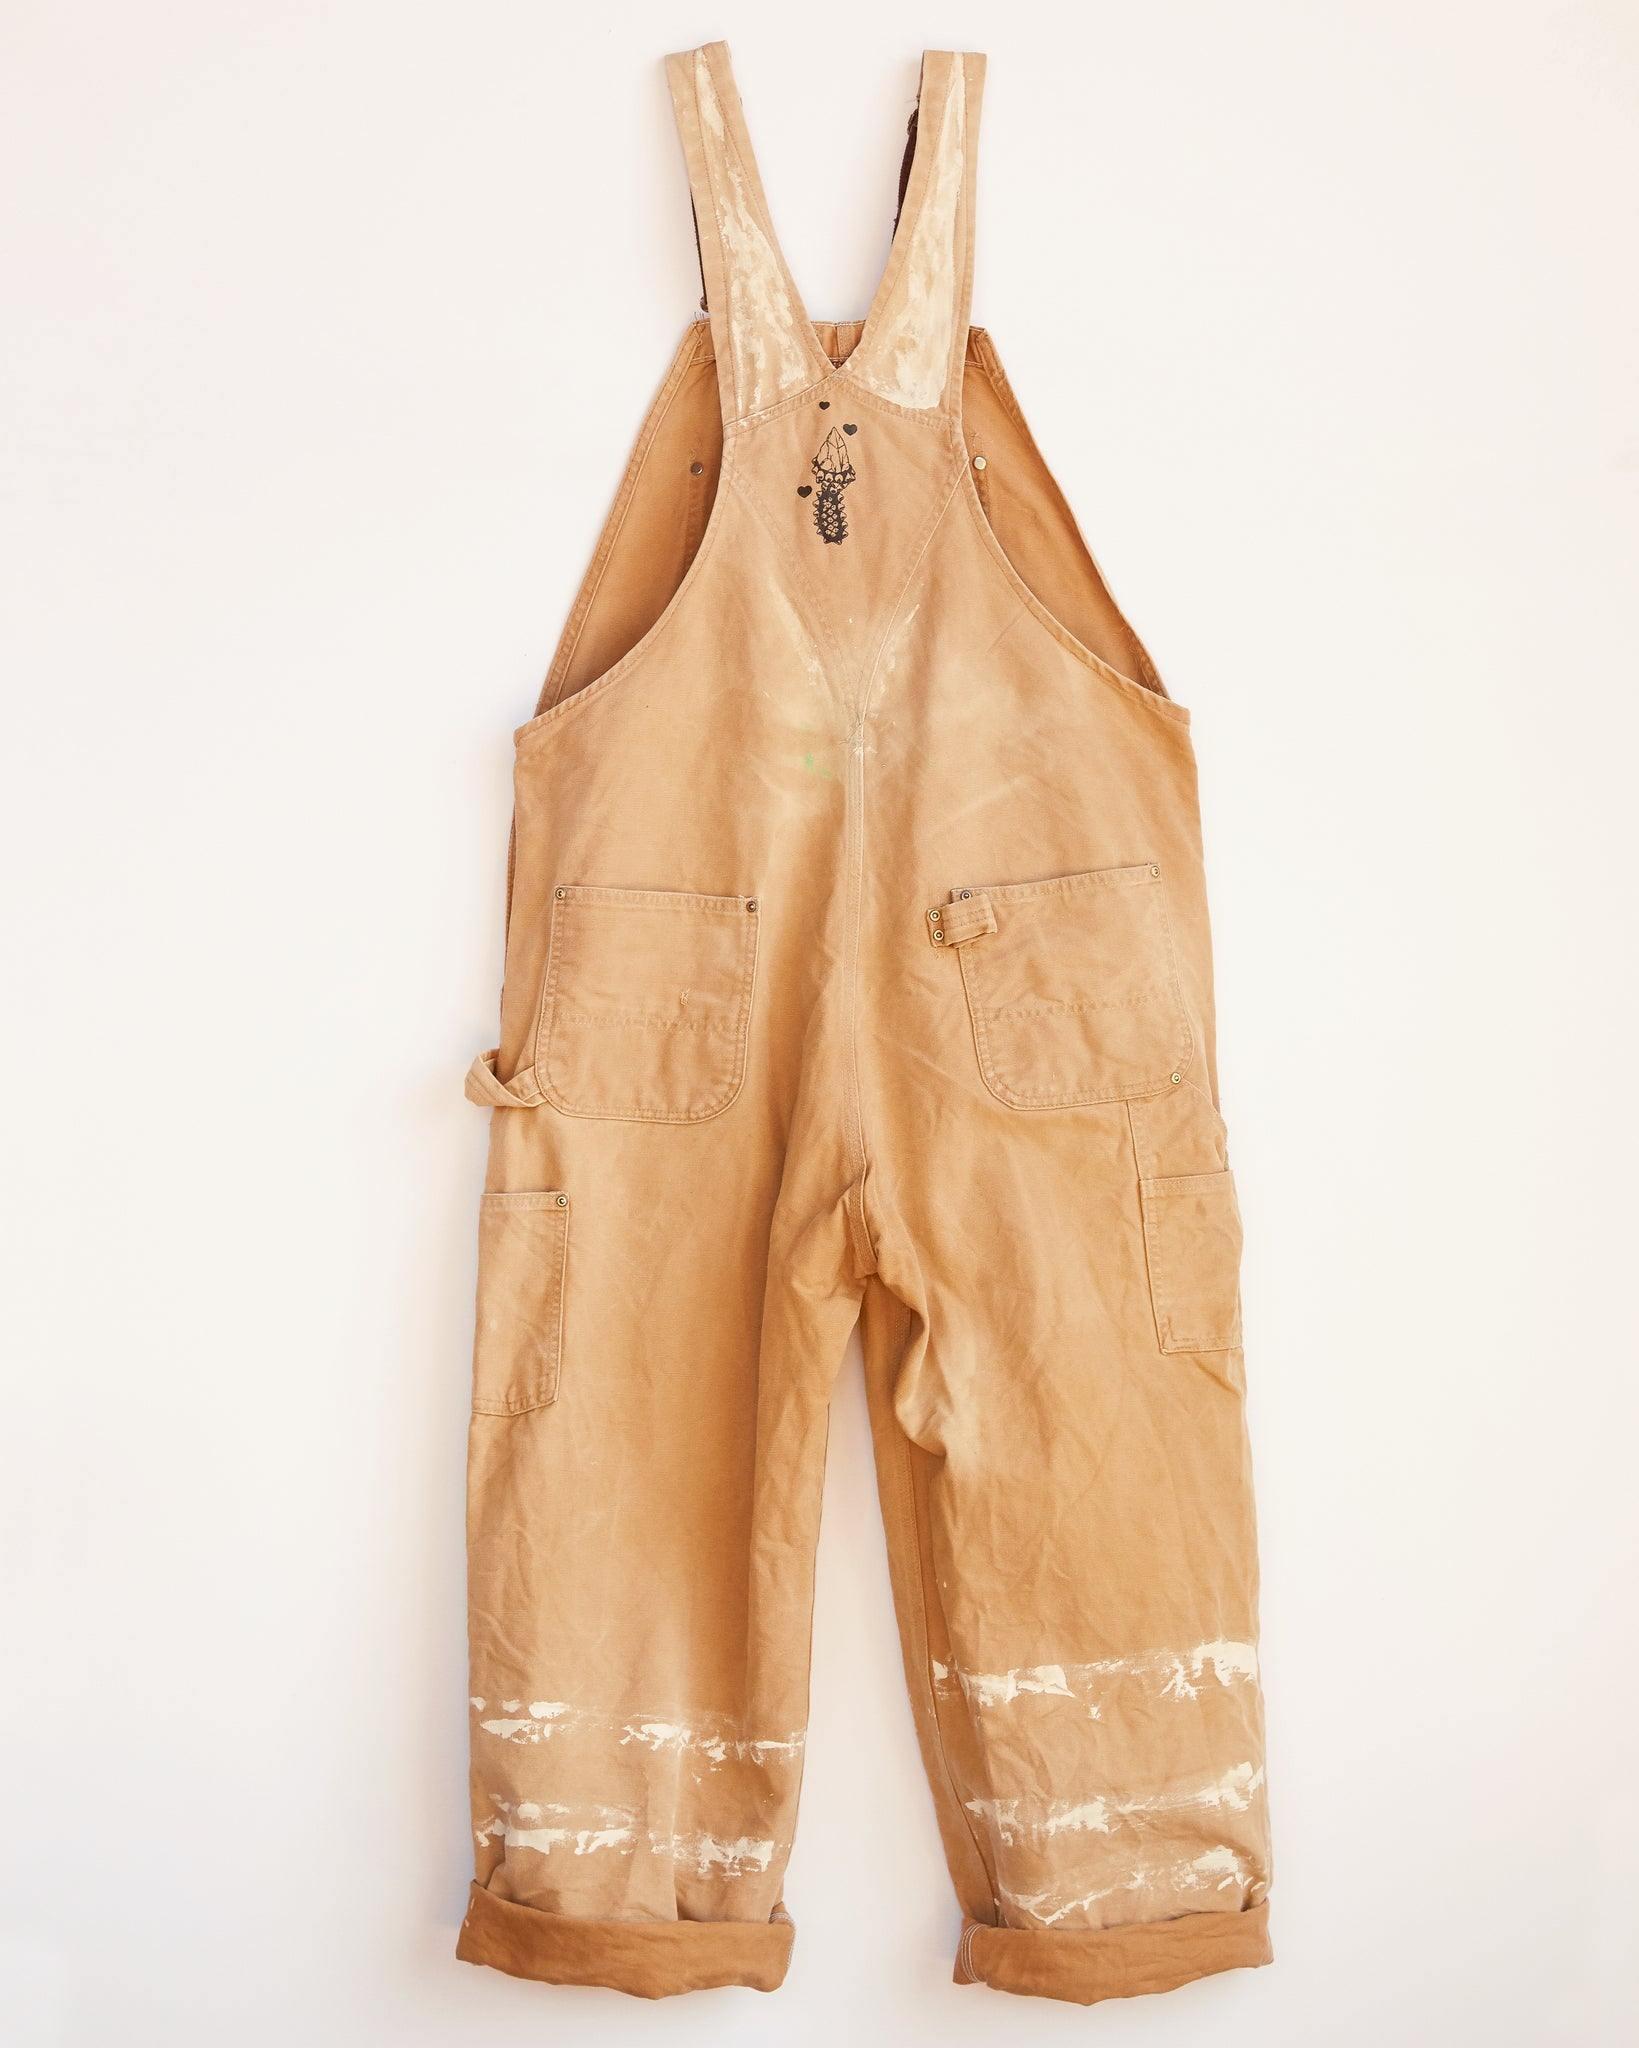 WITH LOVE AND LIGHT CARHARTT OVERALLS #3 - L